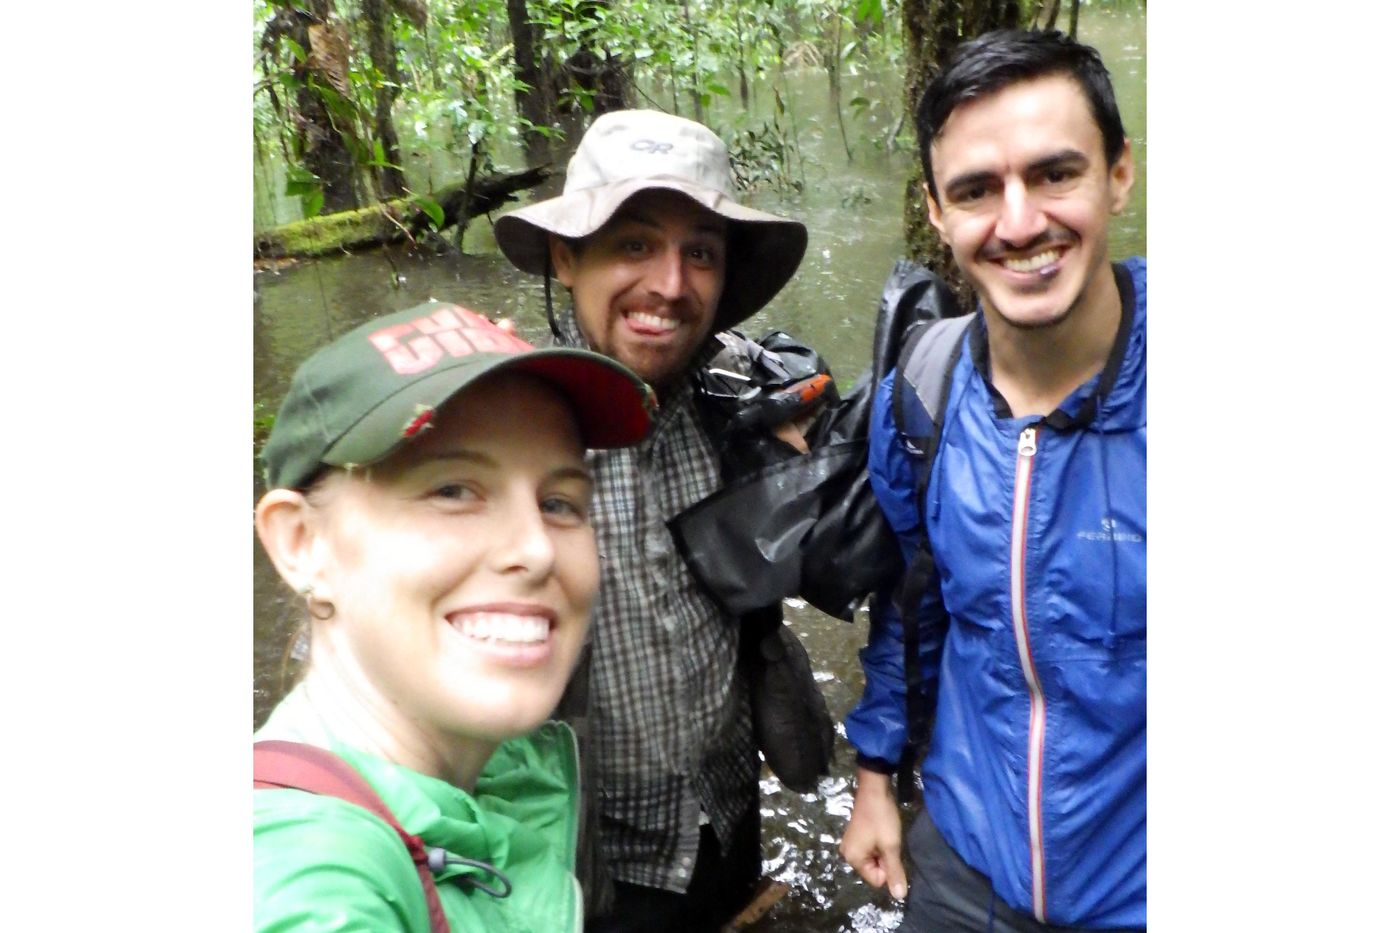 Three people, a woman and two men, take a selfie while standing in a river. They're wearing waterproof camp clothing and are surrounded by trees in the river.